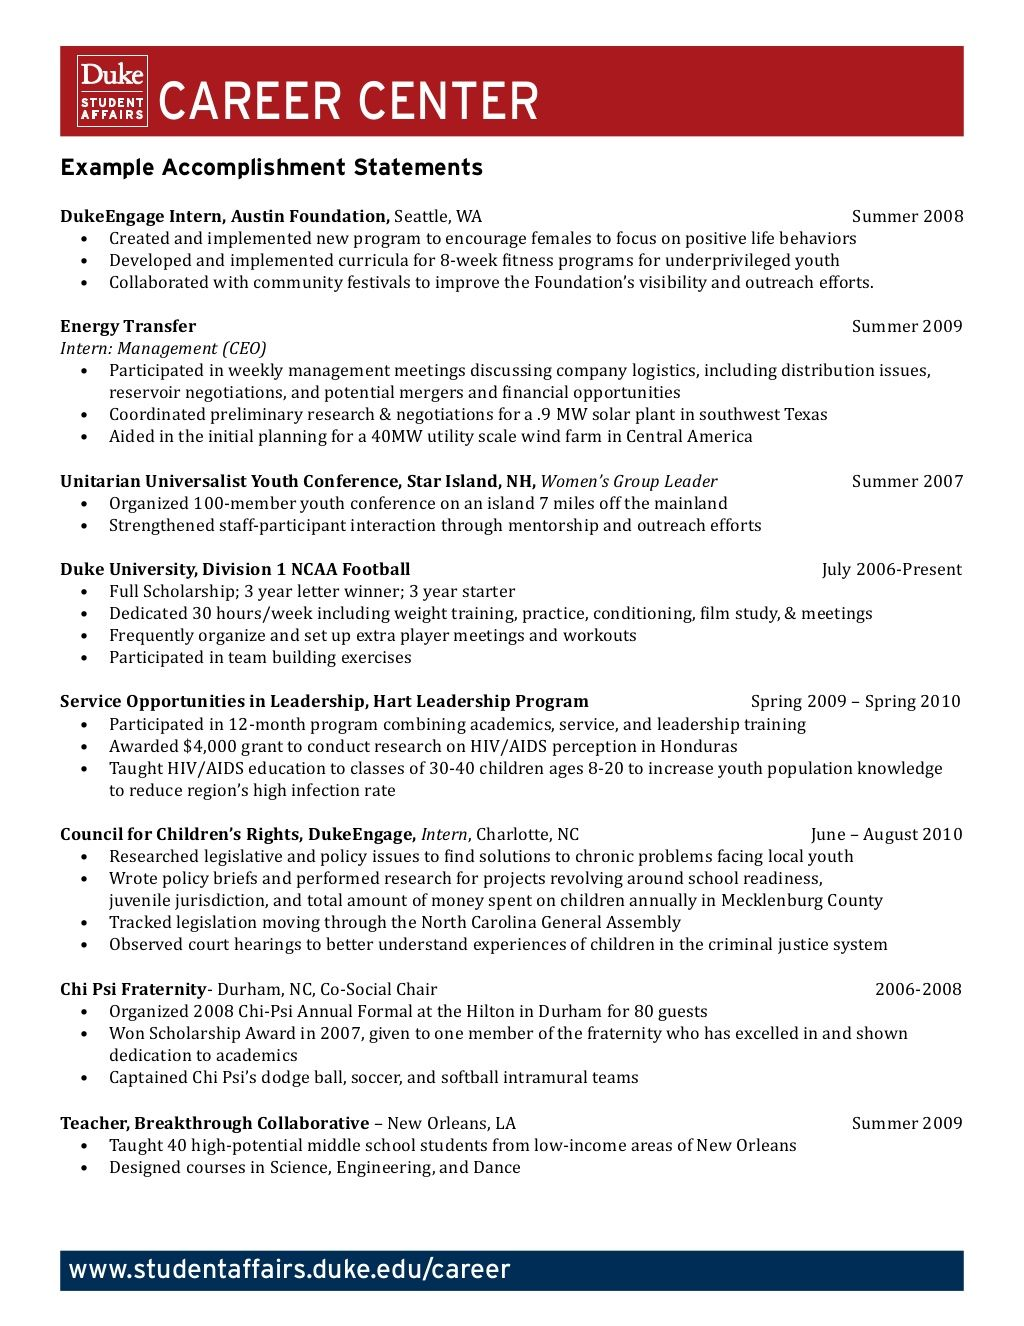 example accomplishment statements by duke university